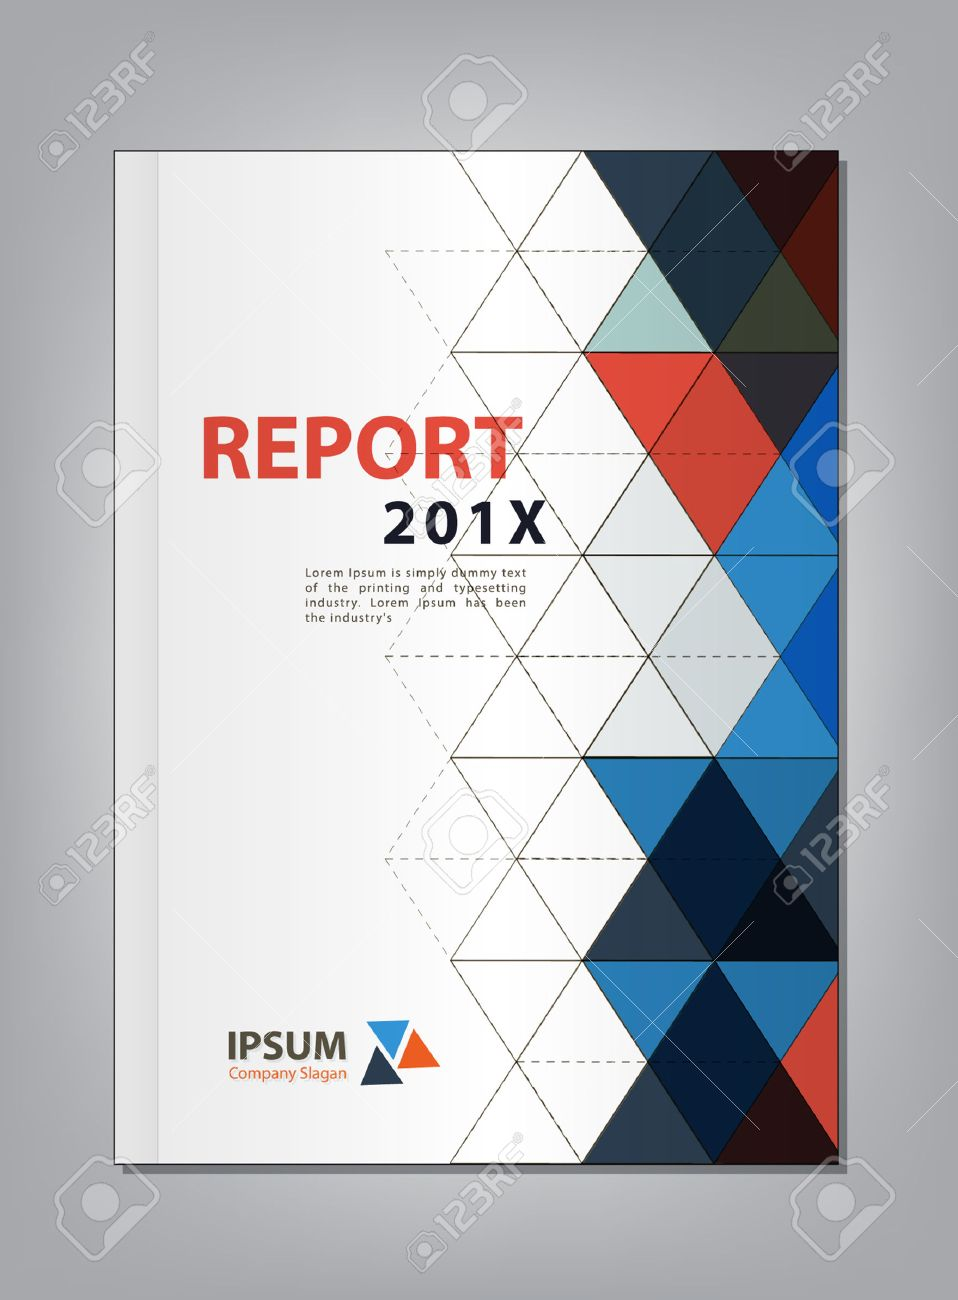 modern annual report cover design multiply triangle theme concept stock vector 42722547